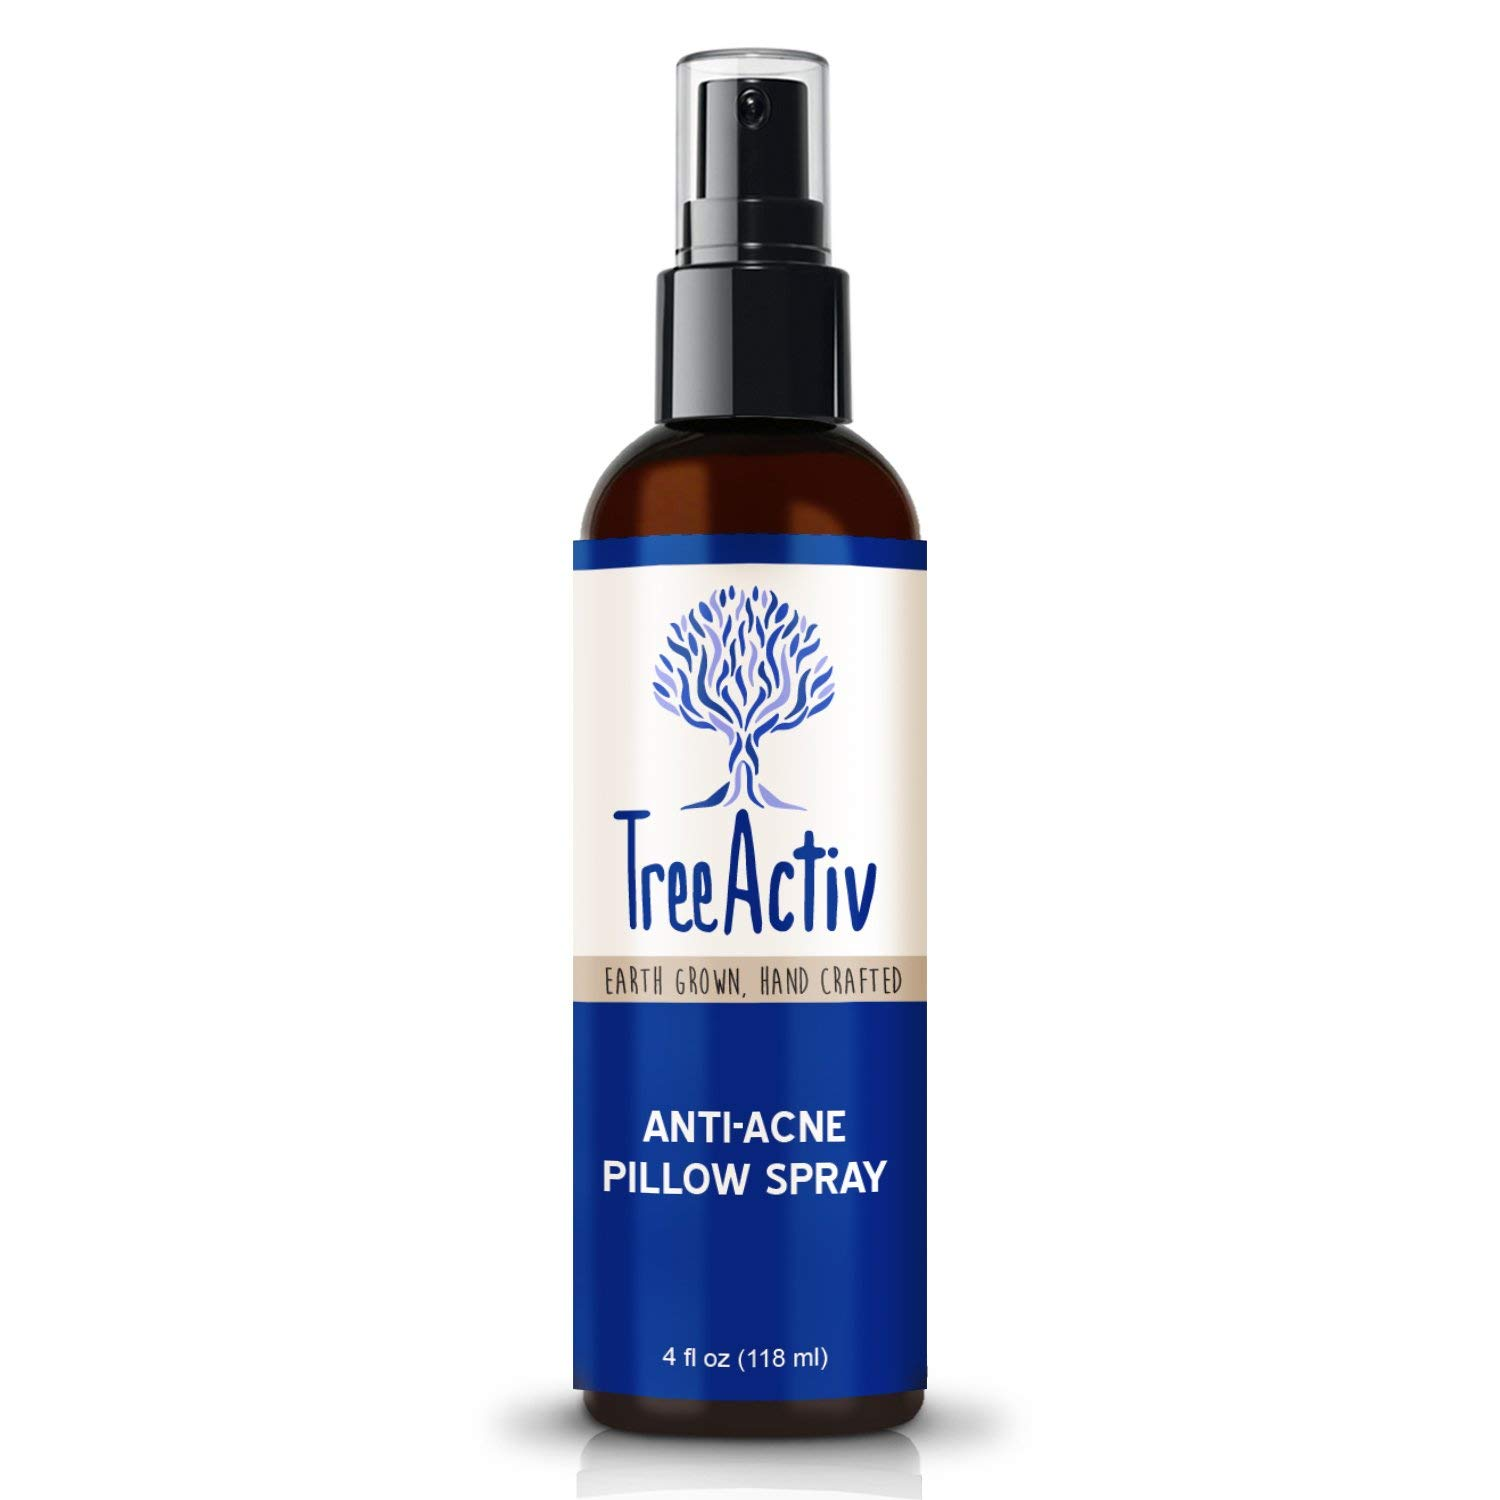 TreeActiv Anti-Acne Pillow Spray | Kills Acne Causing Bacteria | Relax Your Mind & Body | Cleans Fabric, Bedding, Clothing, Carpet & Furniture | Lavender, Peppermint, Tea Tree, Clary Sage | 4 fl oz